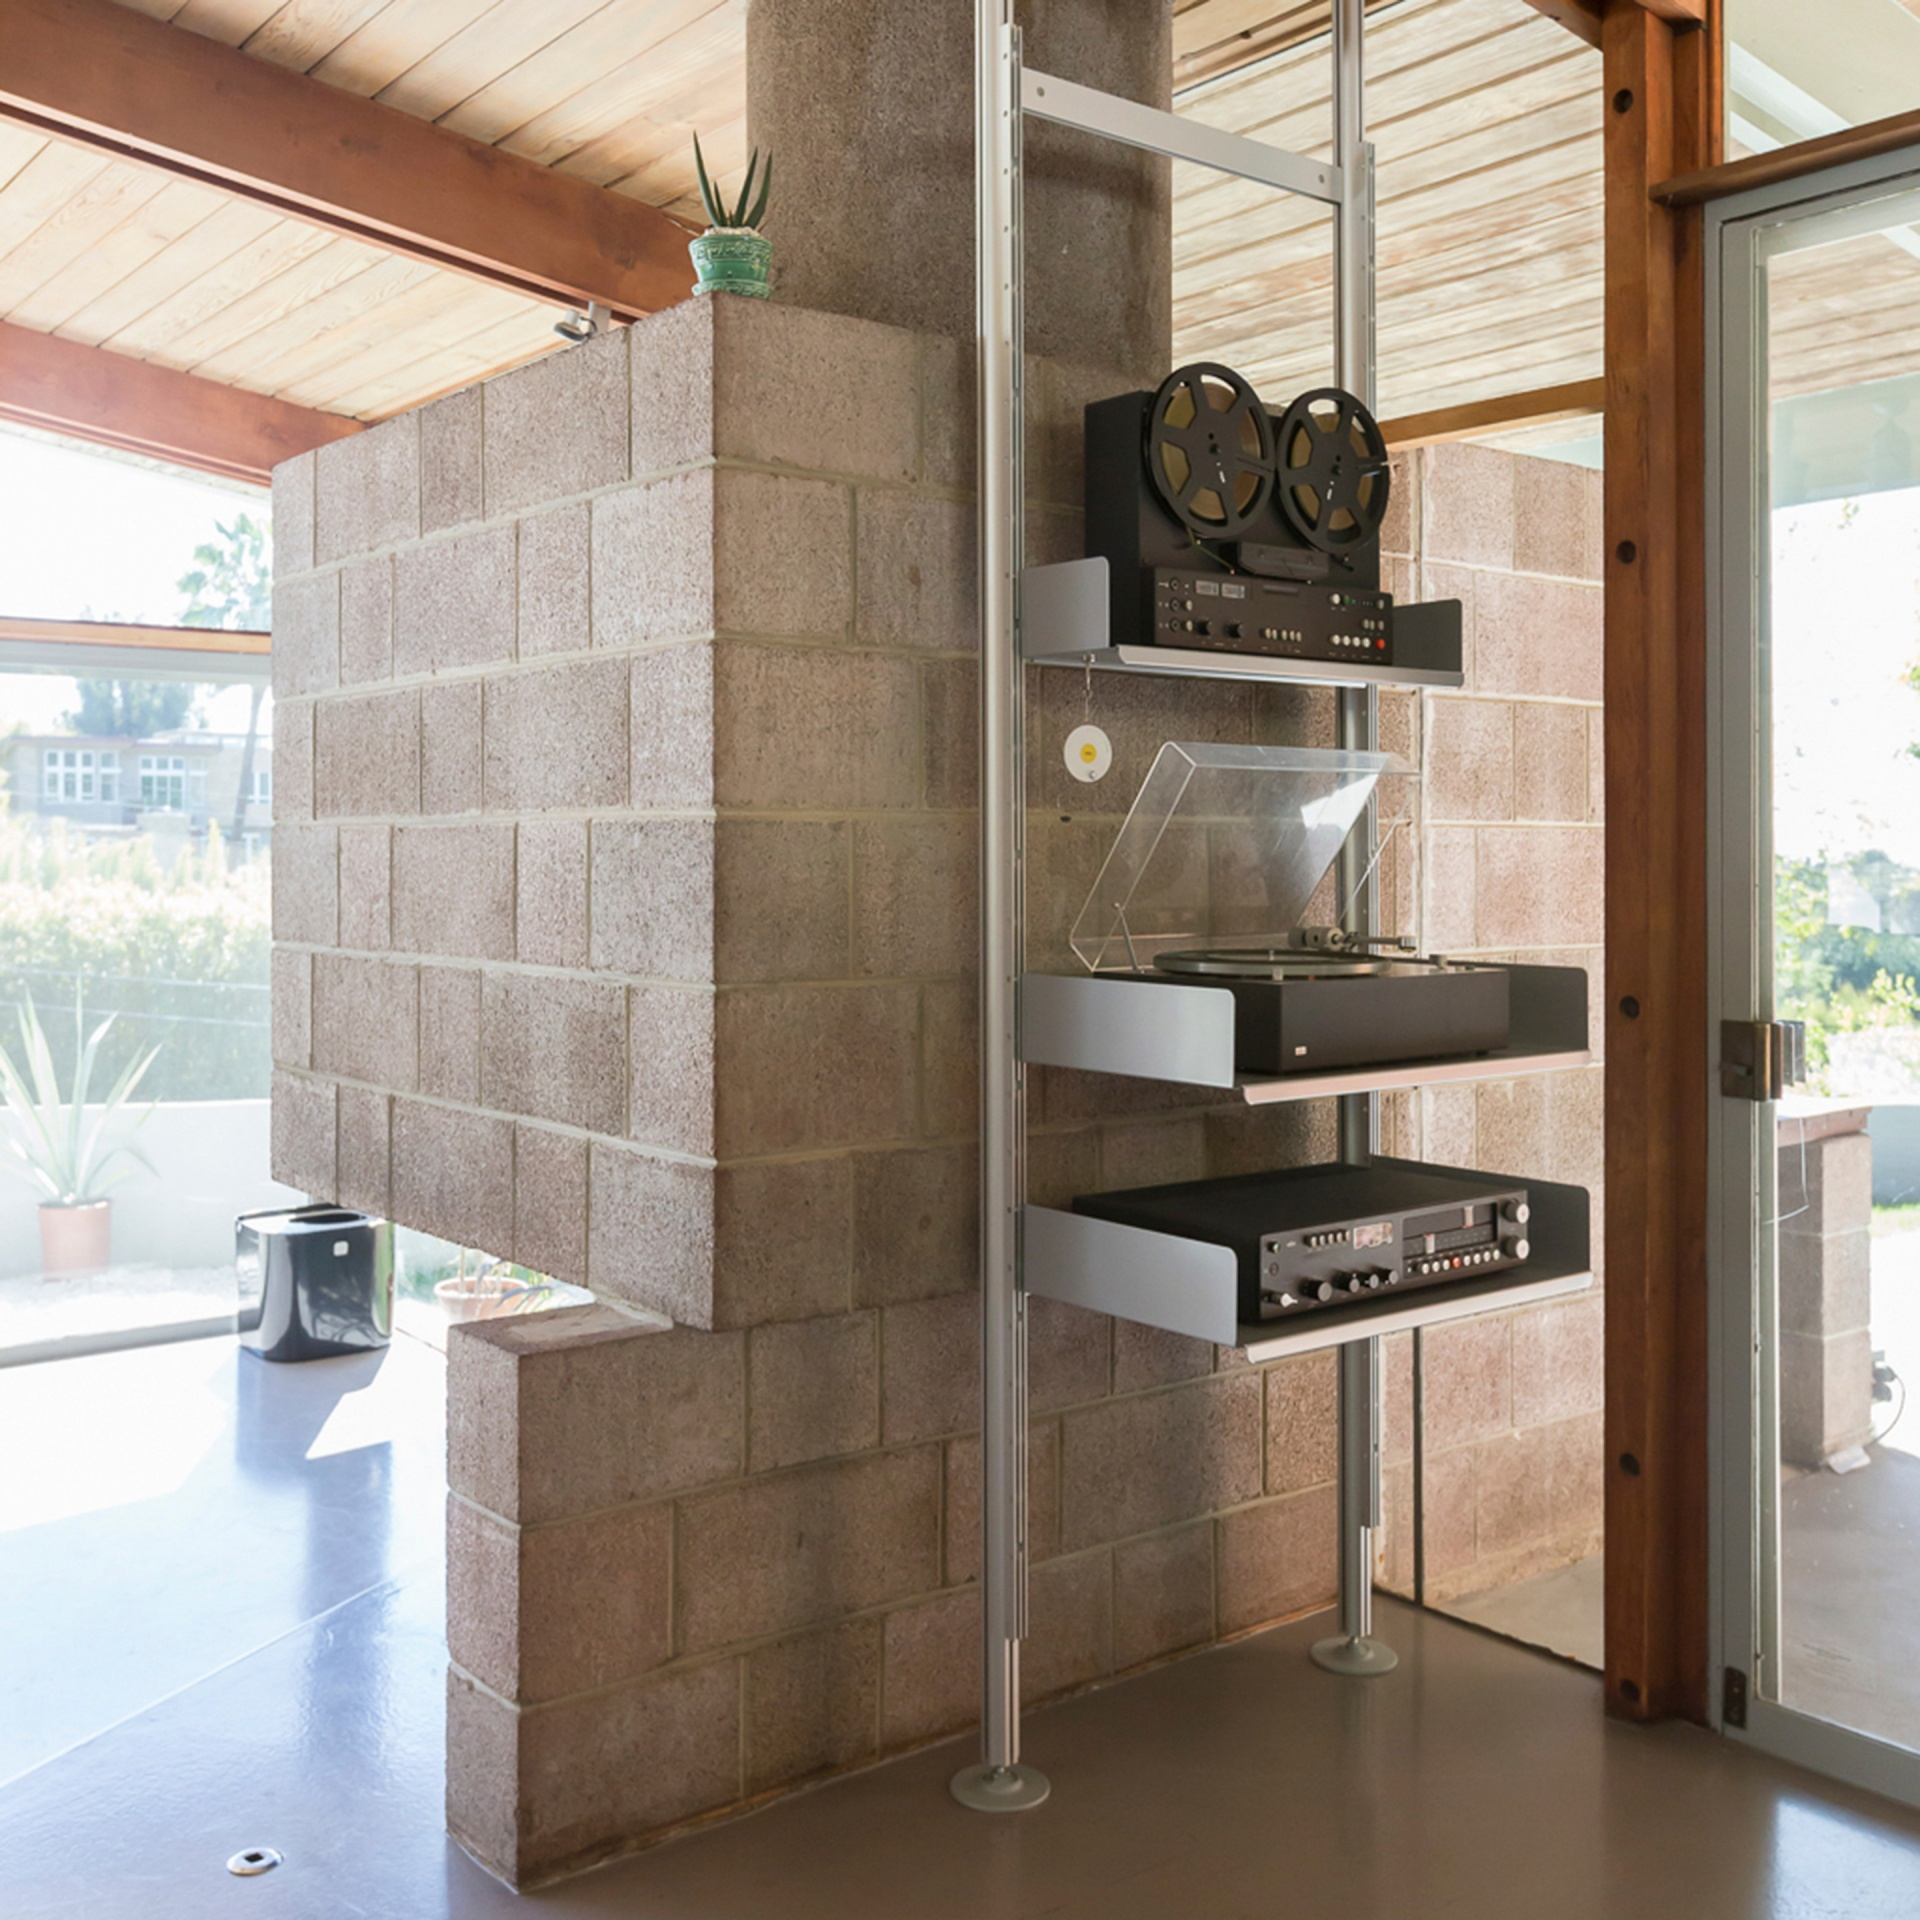 In Los Angeles the 606 Universal Shelving System is compressed in an A. Quincy Jones home